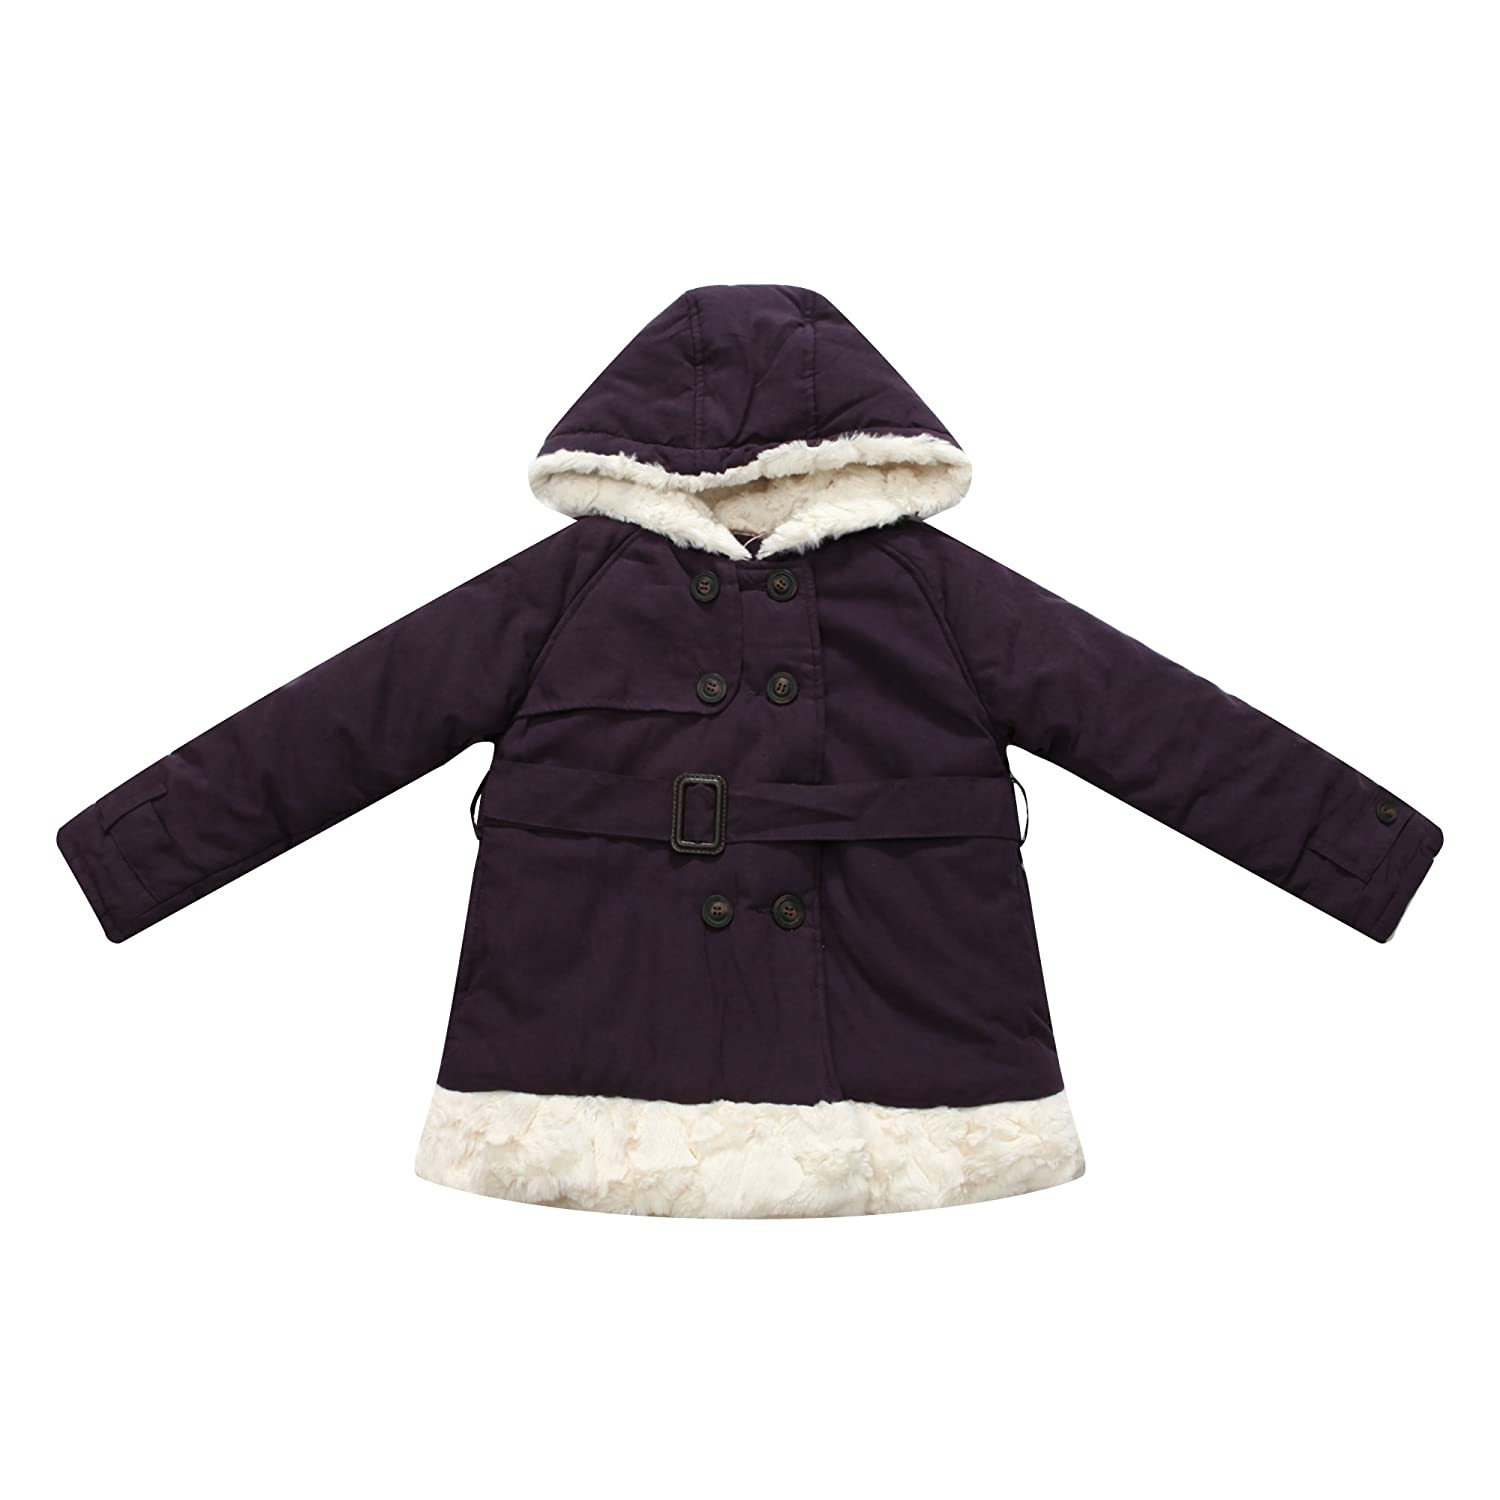 Richie House Girls' Warm Coat with Faux Fur Trim RH0880